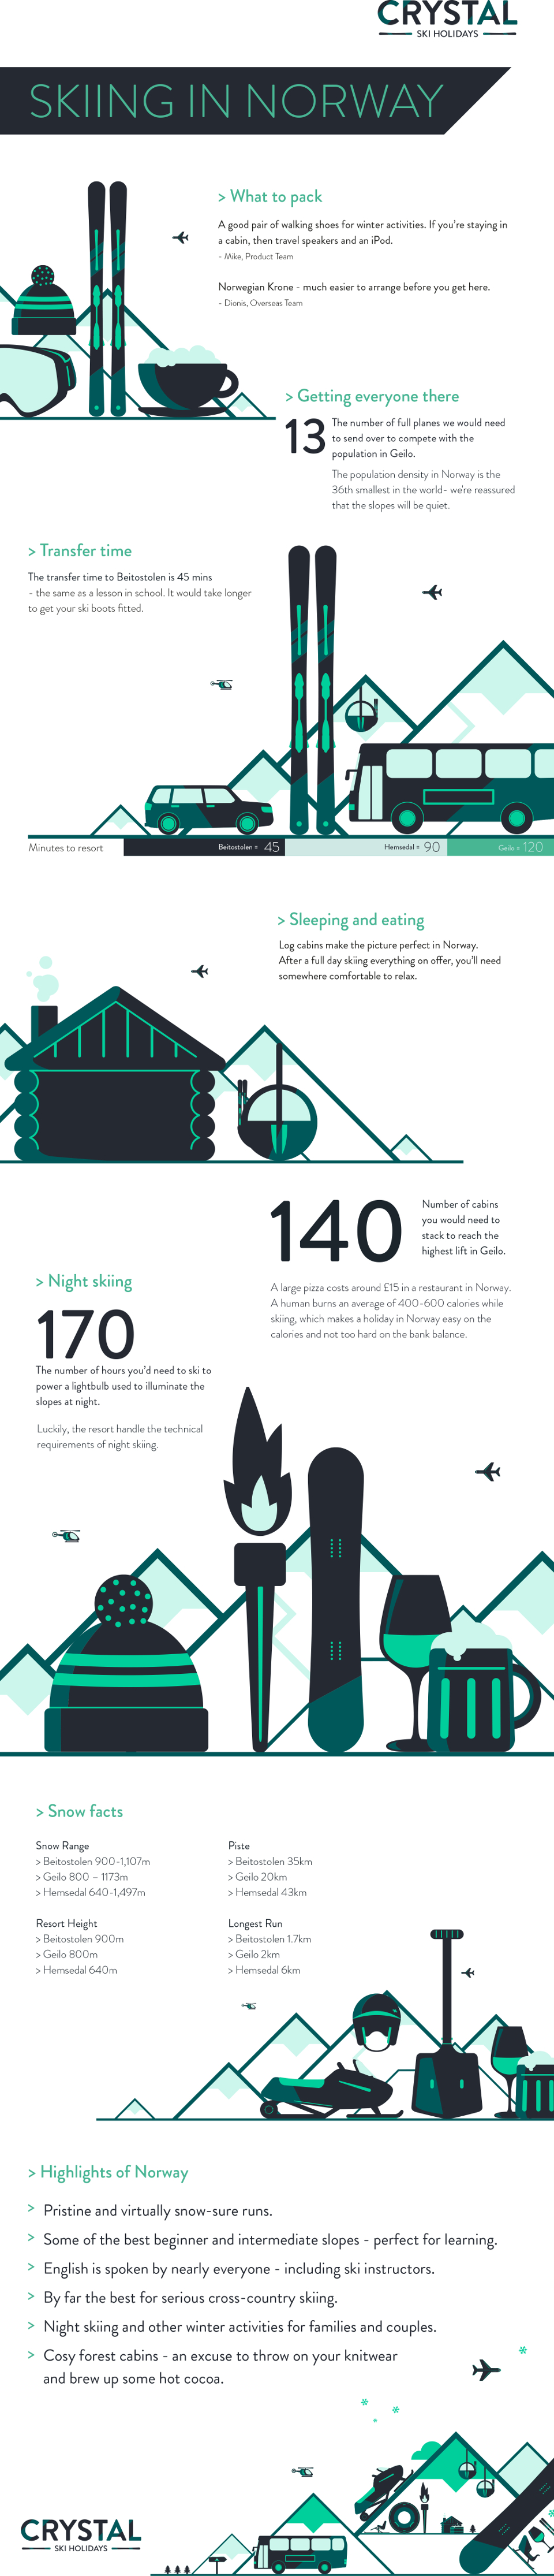 Crystal's guide to skiing in Norway [infographic]